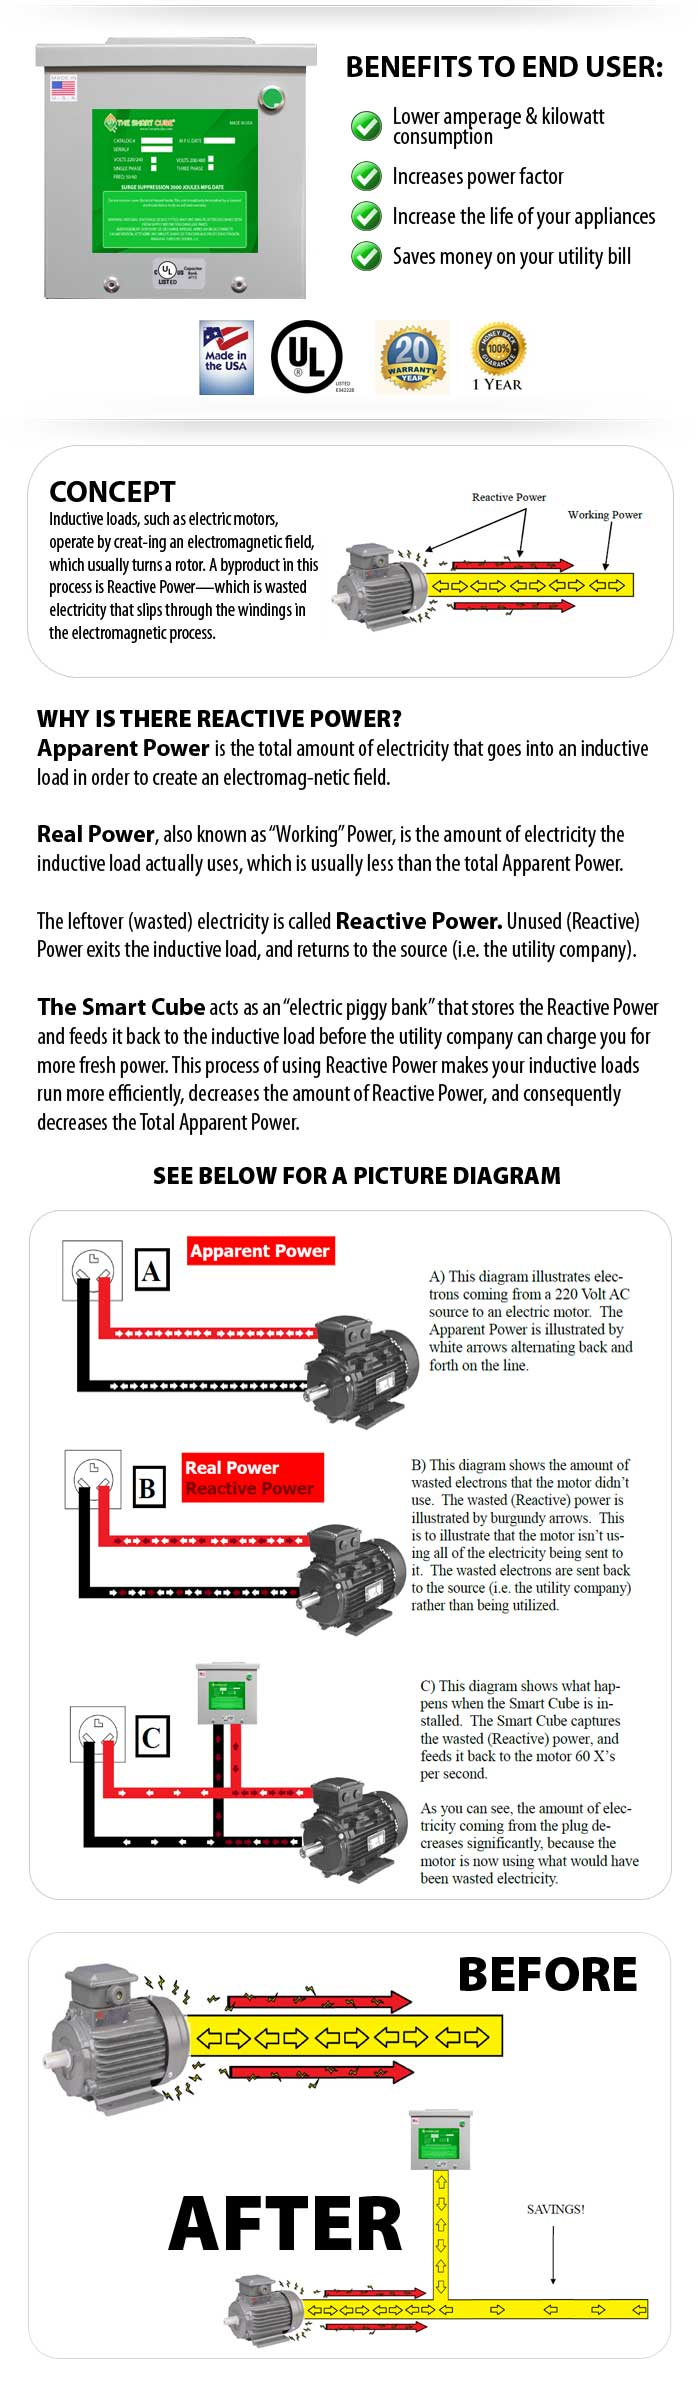 The Smart Cube overview.